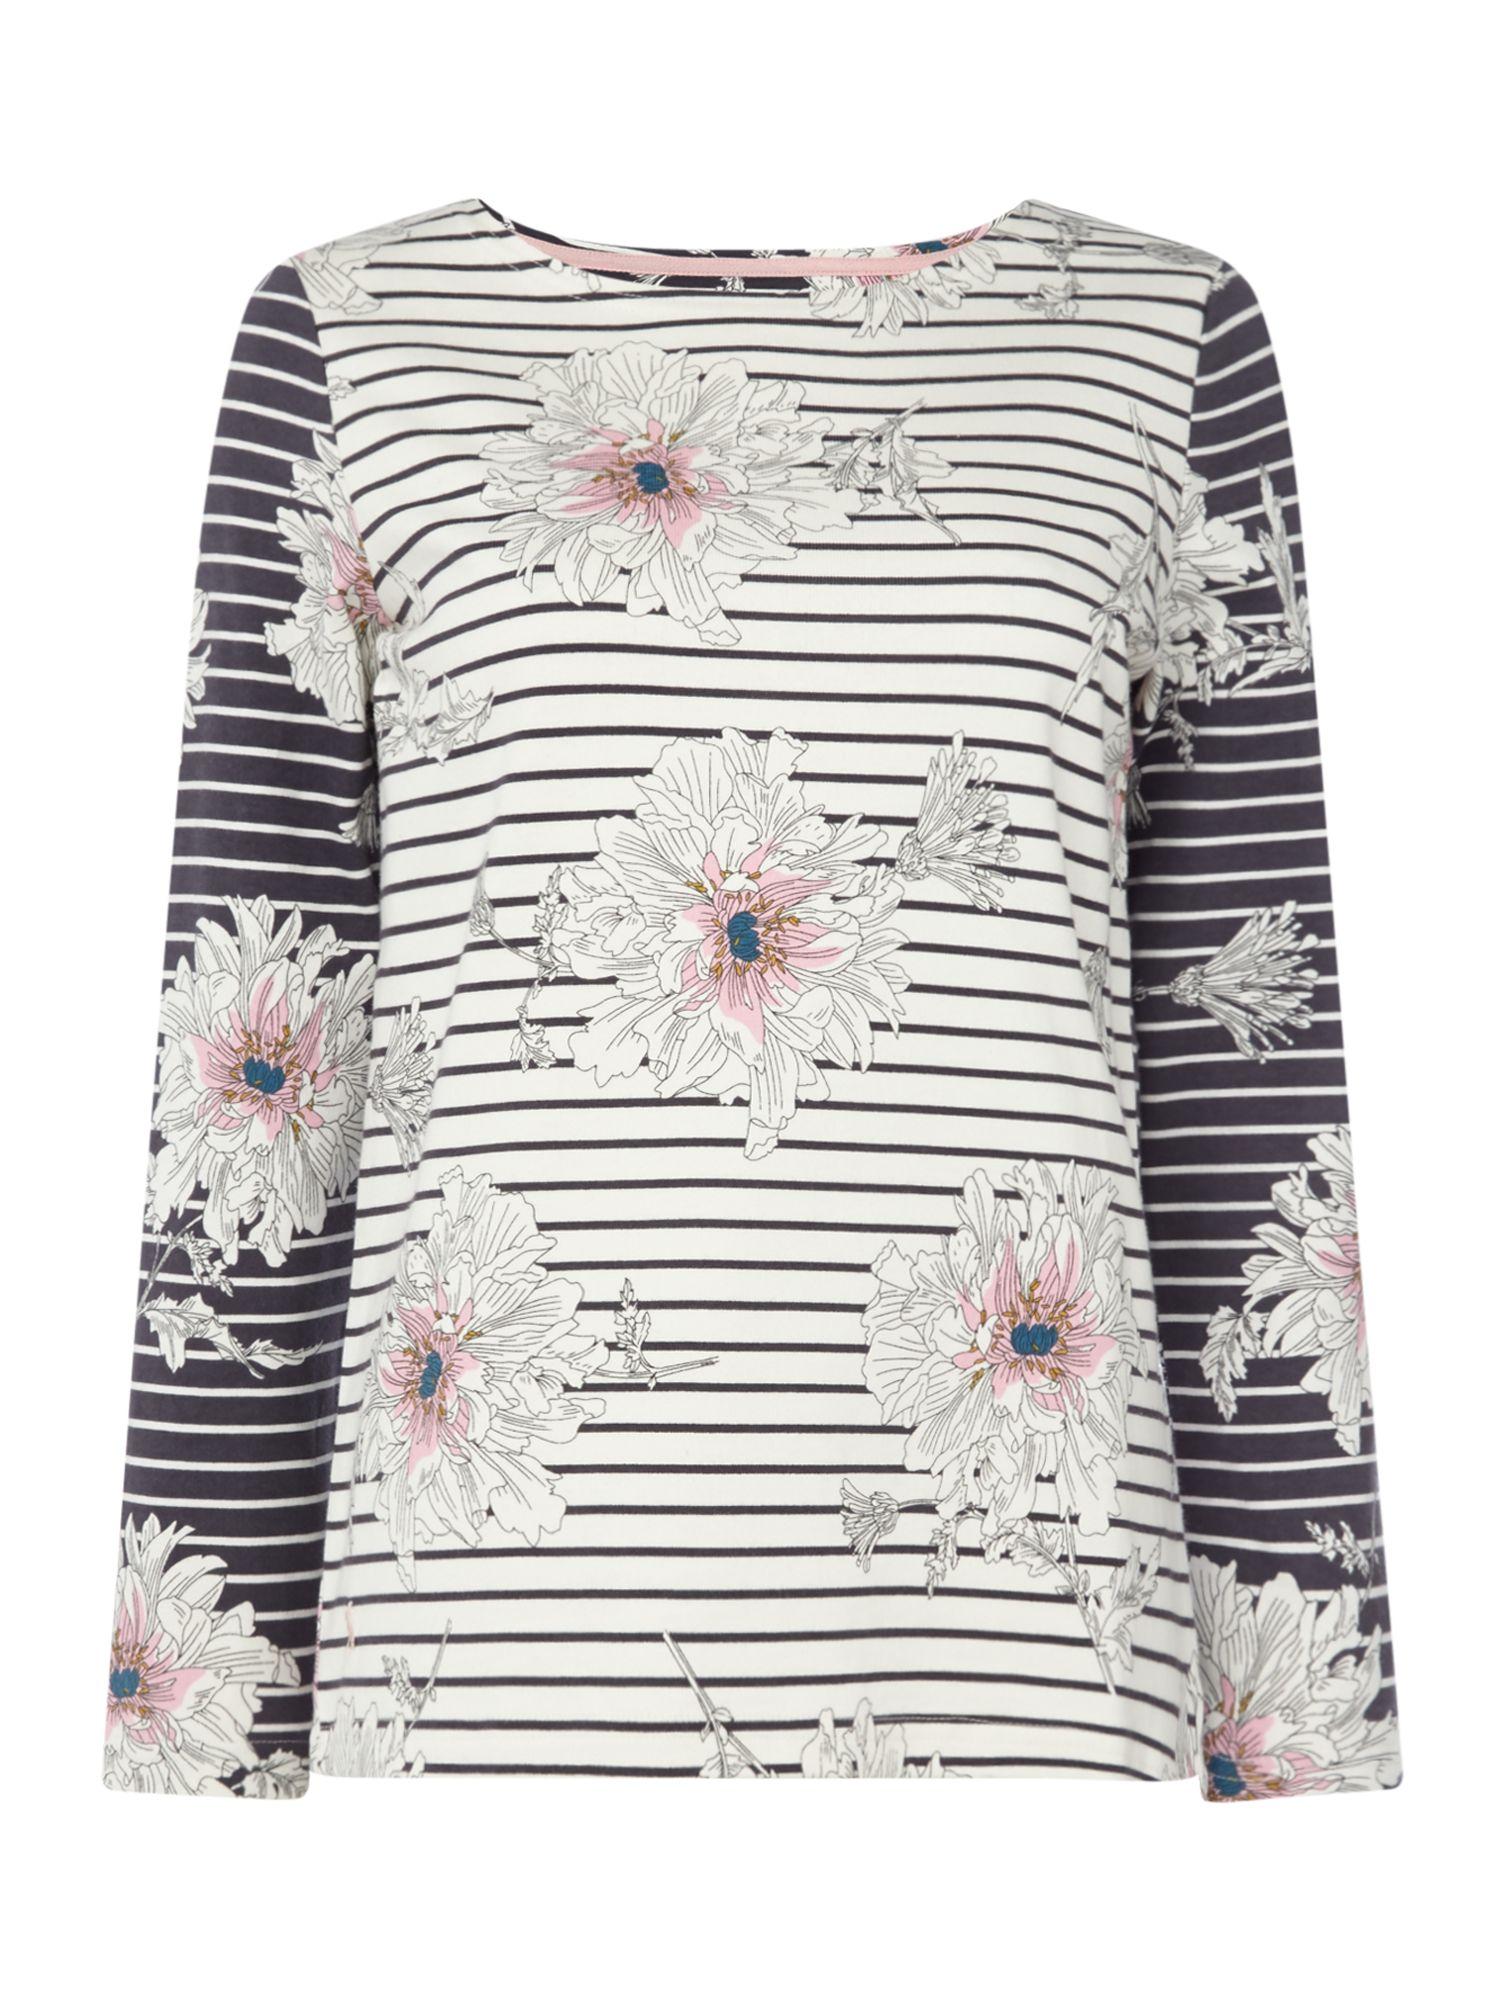 Joules Long sleeves crew neck printed jersey top, Cream